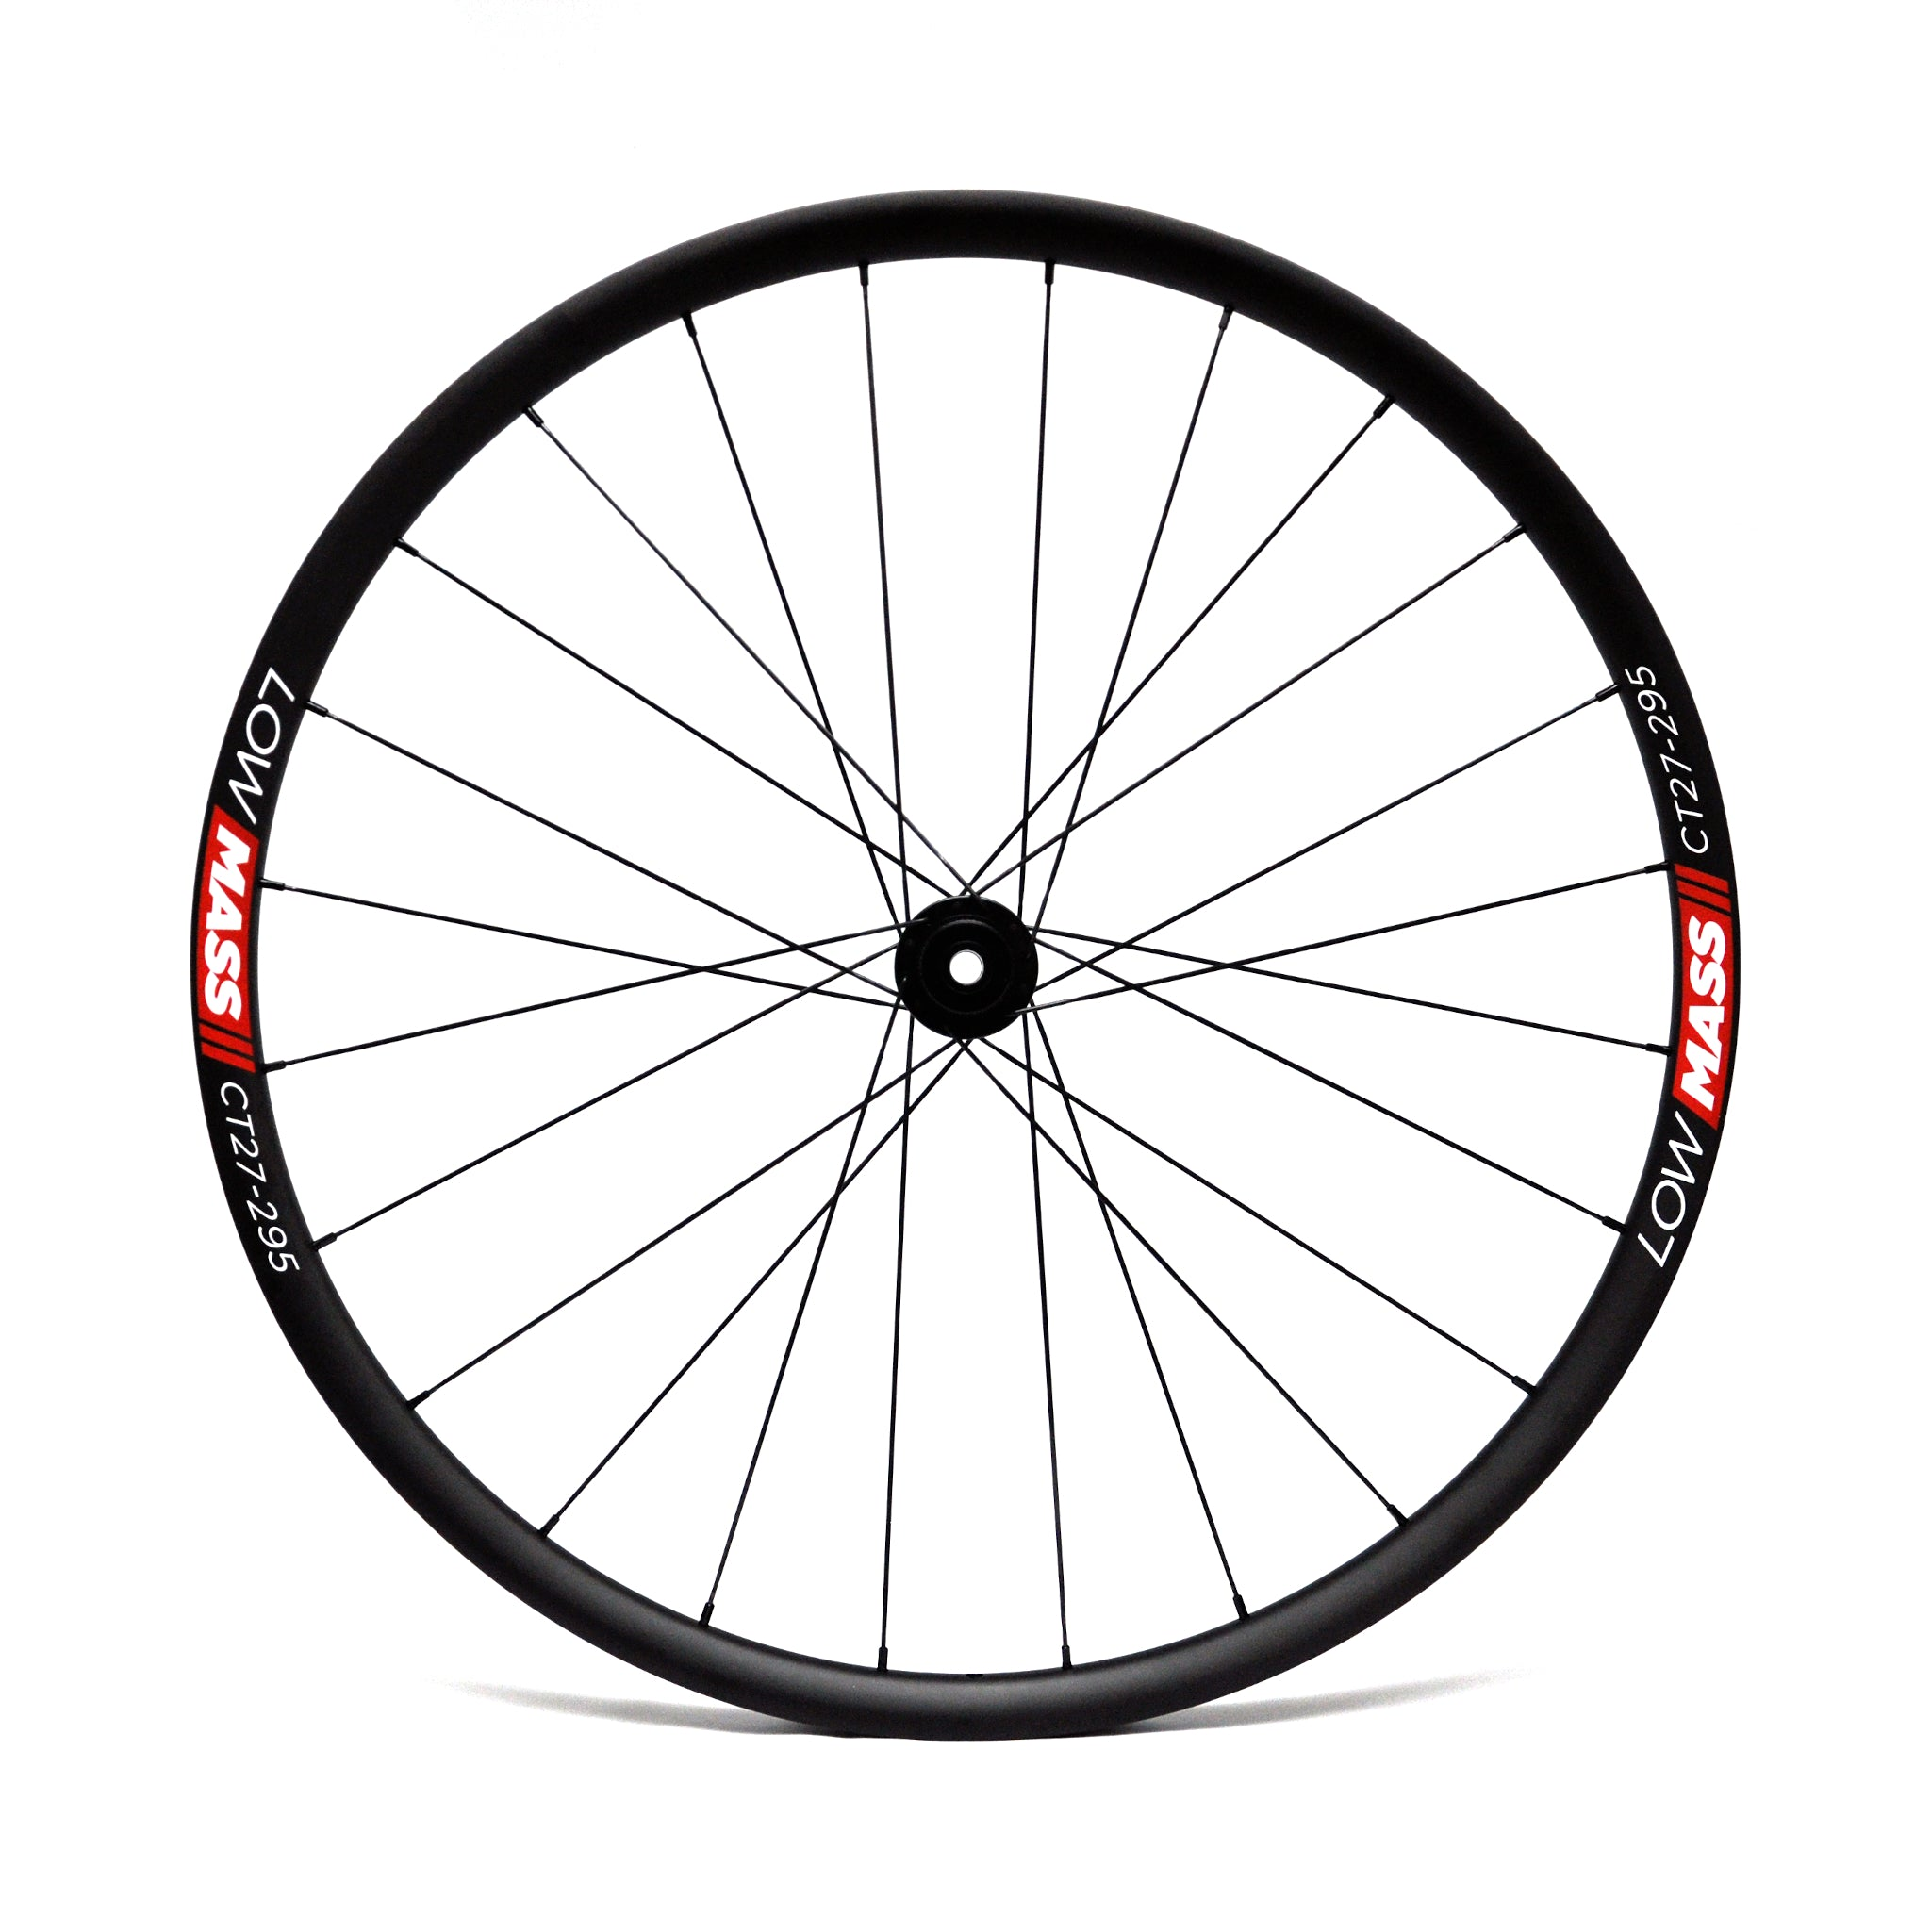 LOWMASS Carbon Tubular Cyclo Cross Disc Wheelset (650B)